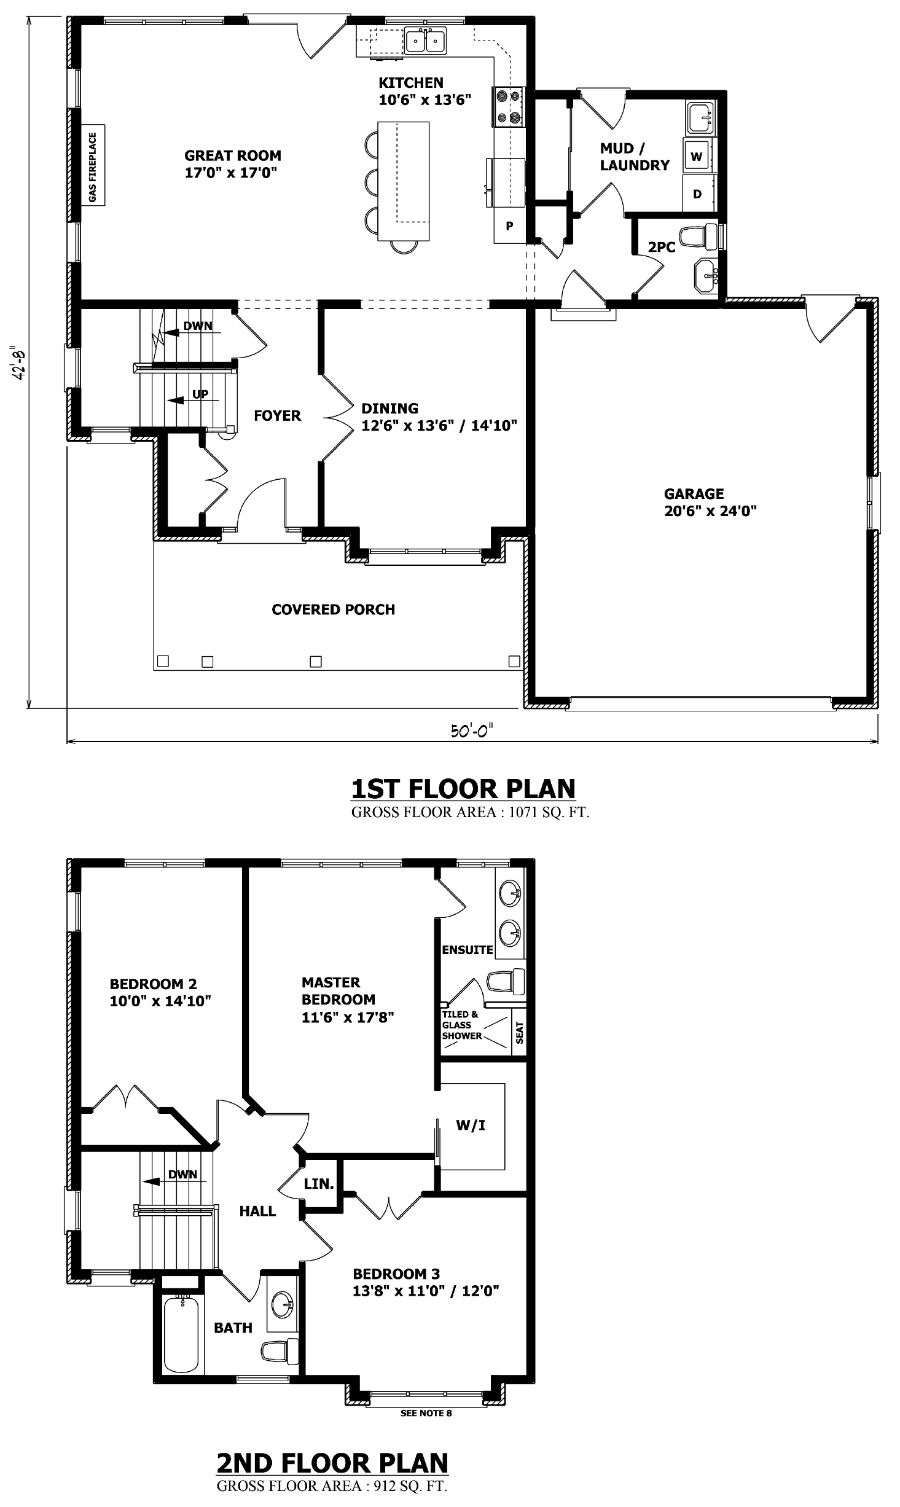 Pin By Ashley Alydane On Floorplans Two Storey House Plans Custom Home Plans Two Story House Plans